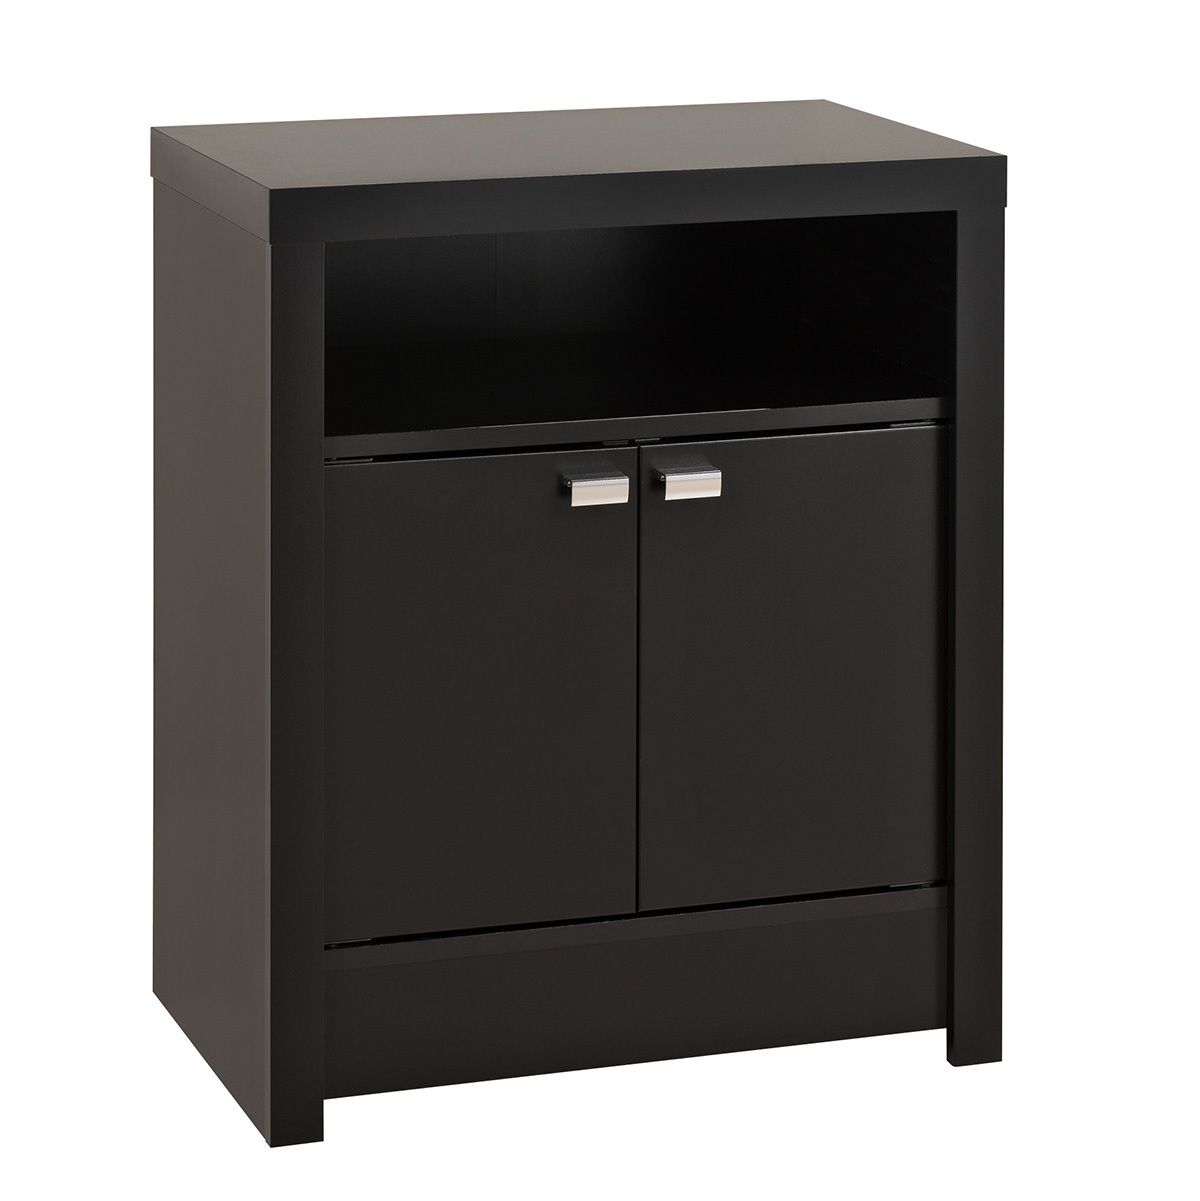 Series 9 2 Door Tall Nightstand Black Bdnh 0502 1